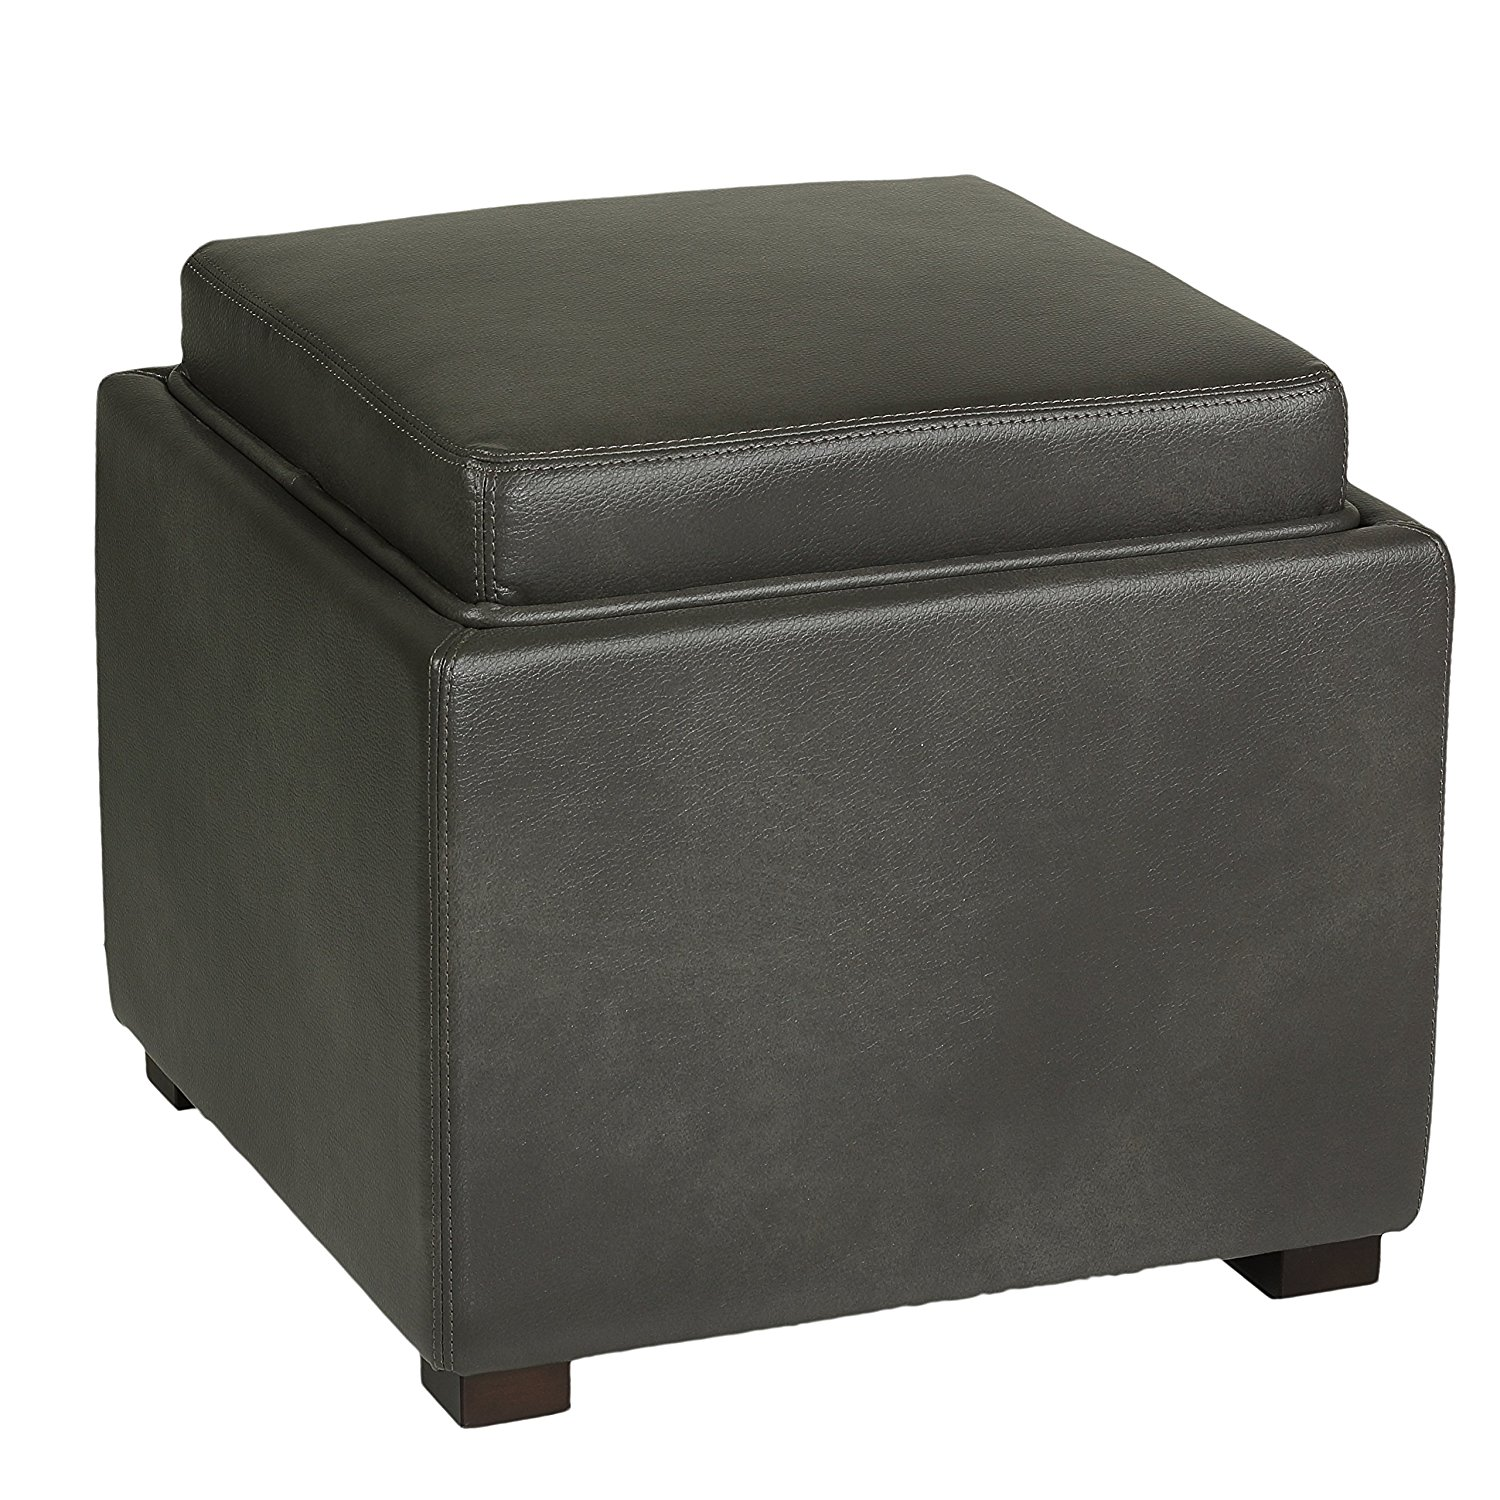 Small Cube Ottoman | Storage Cube Ottoman | Storage Seating Cubes